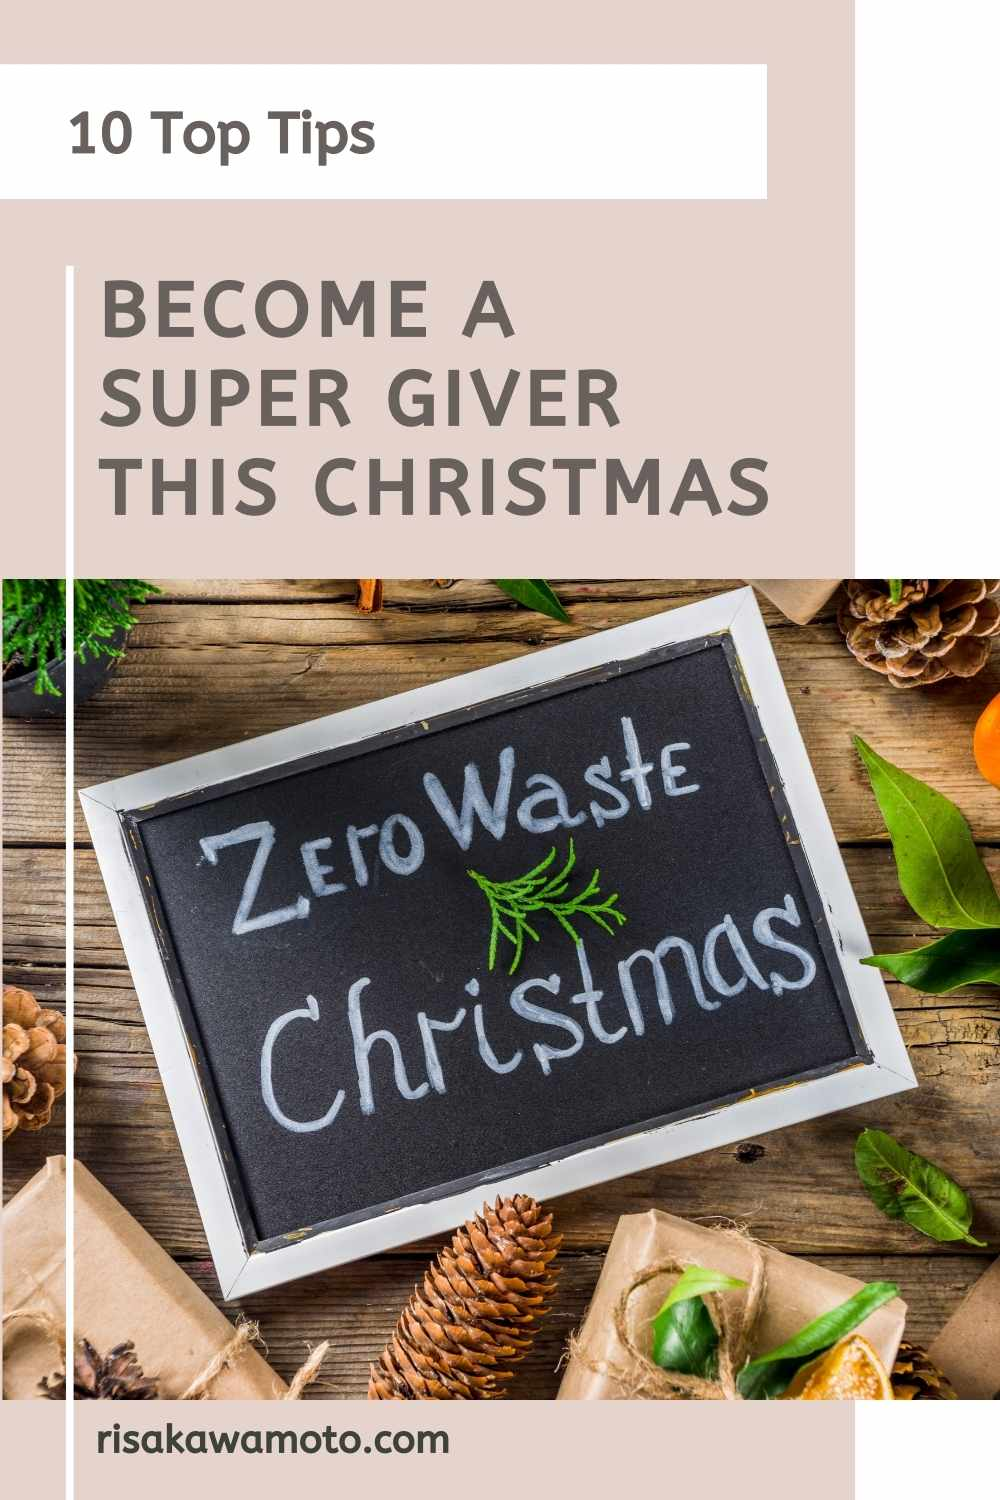 10 Top Tips to Become a Super Giver this Christmas - Eco Friendly Christmas Present Ideas